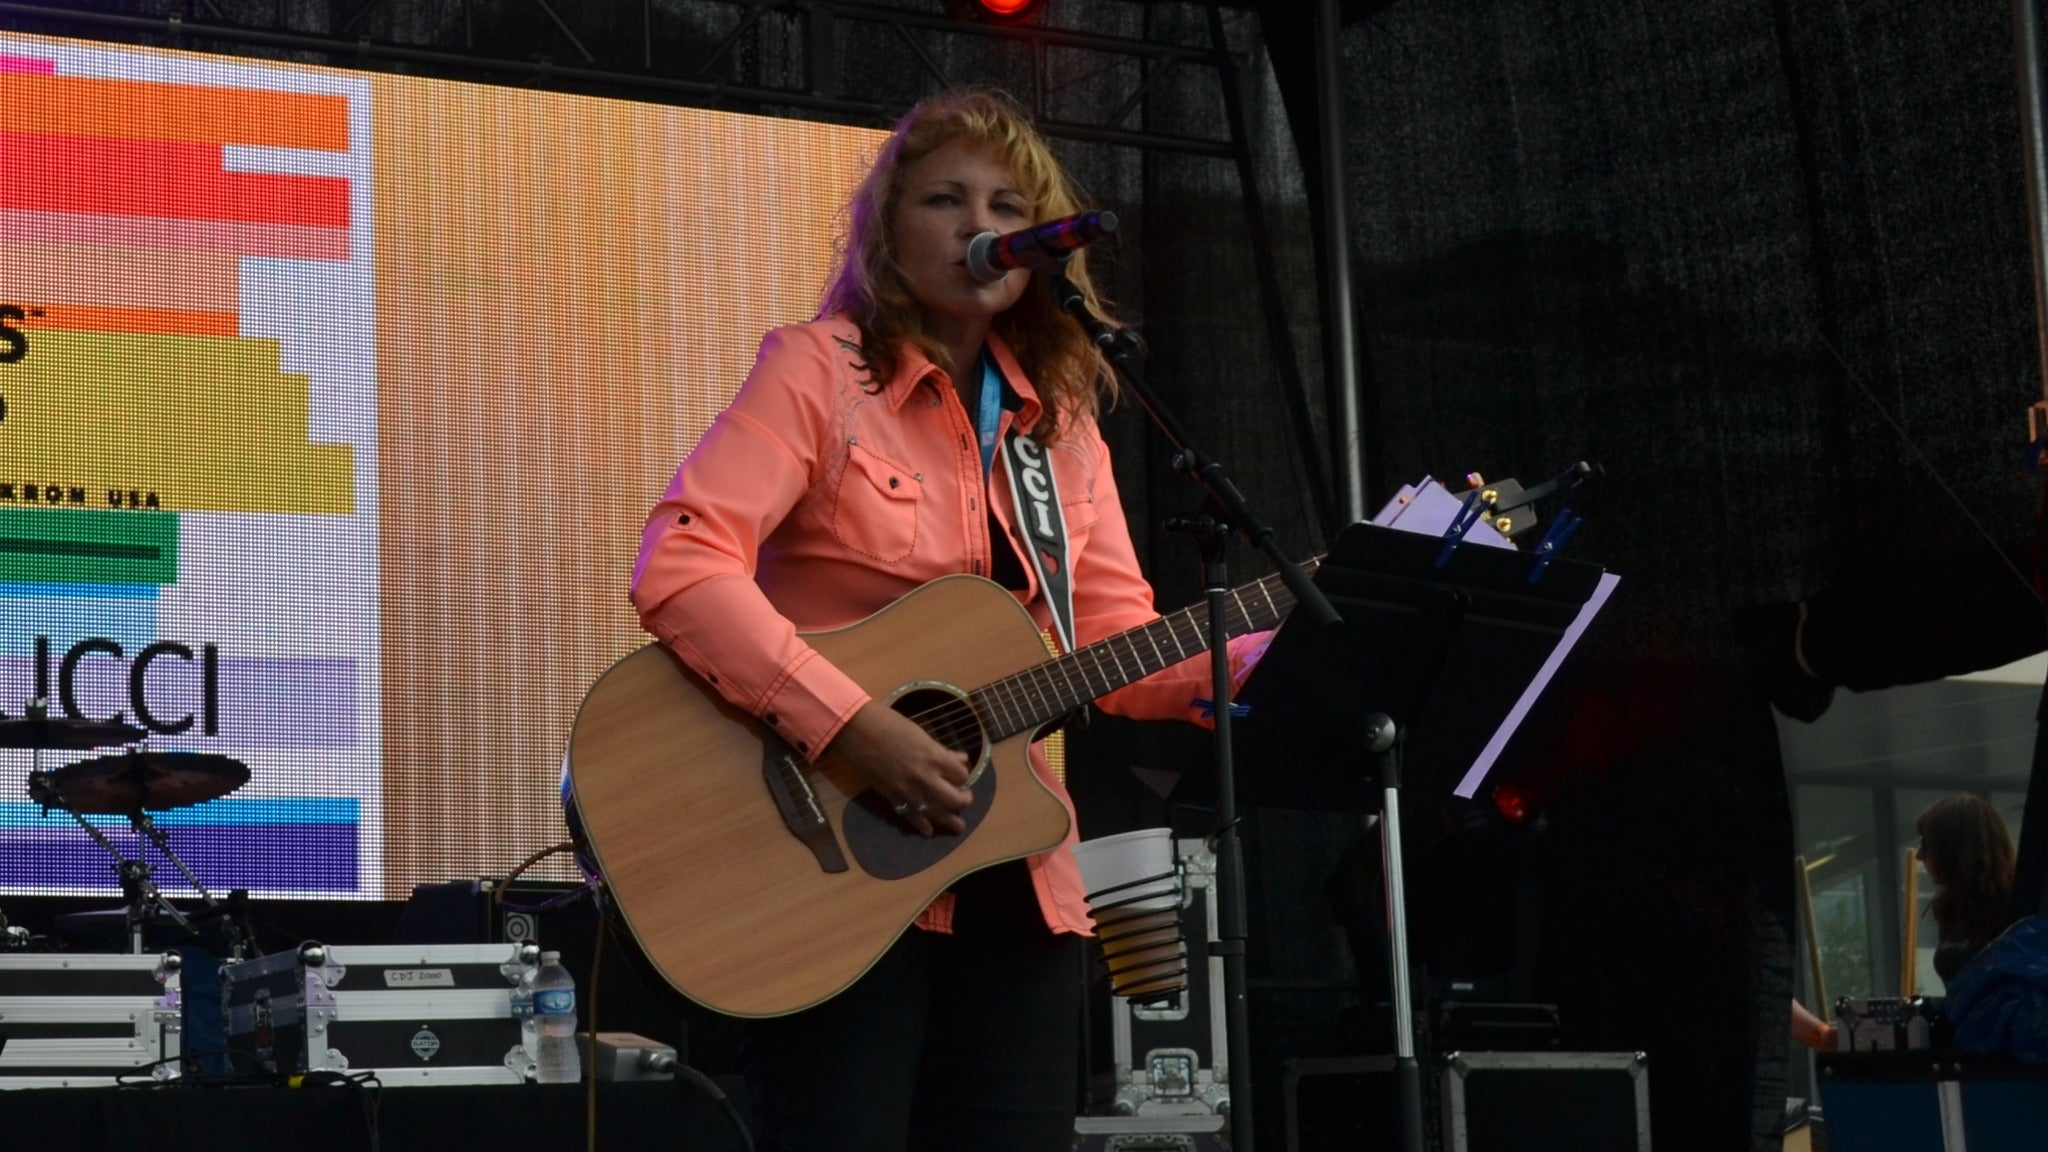 Christine Martucci And The Band Of Love at The Stone Pony